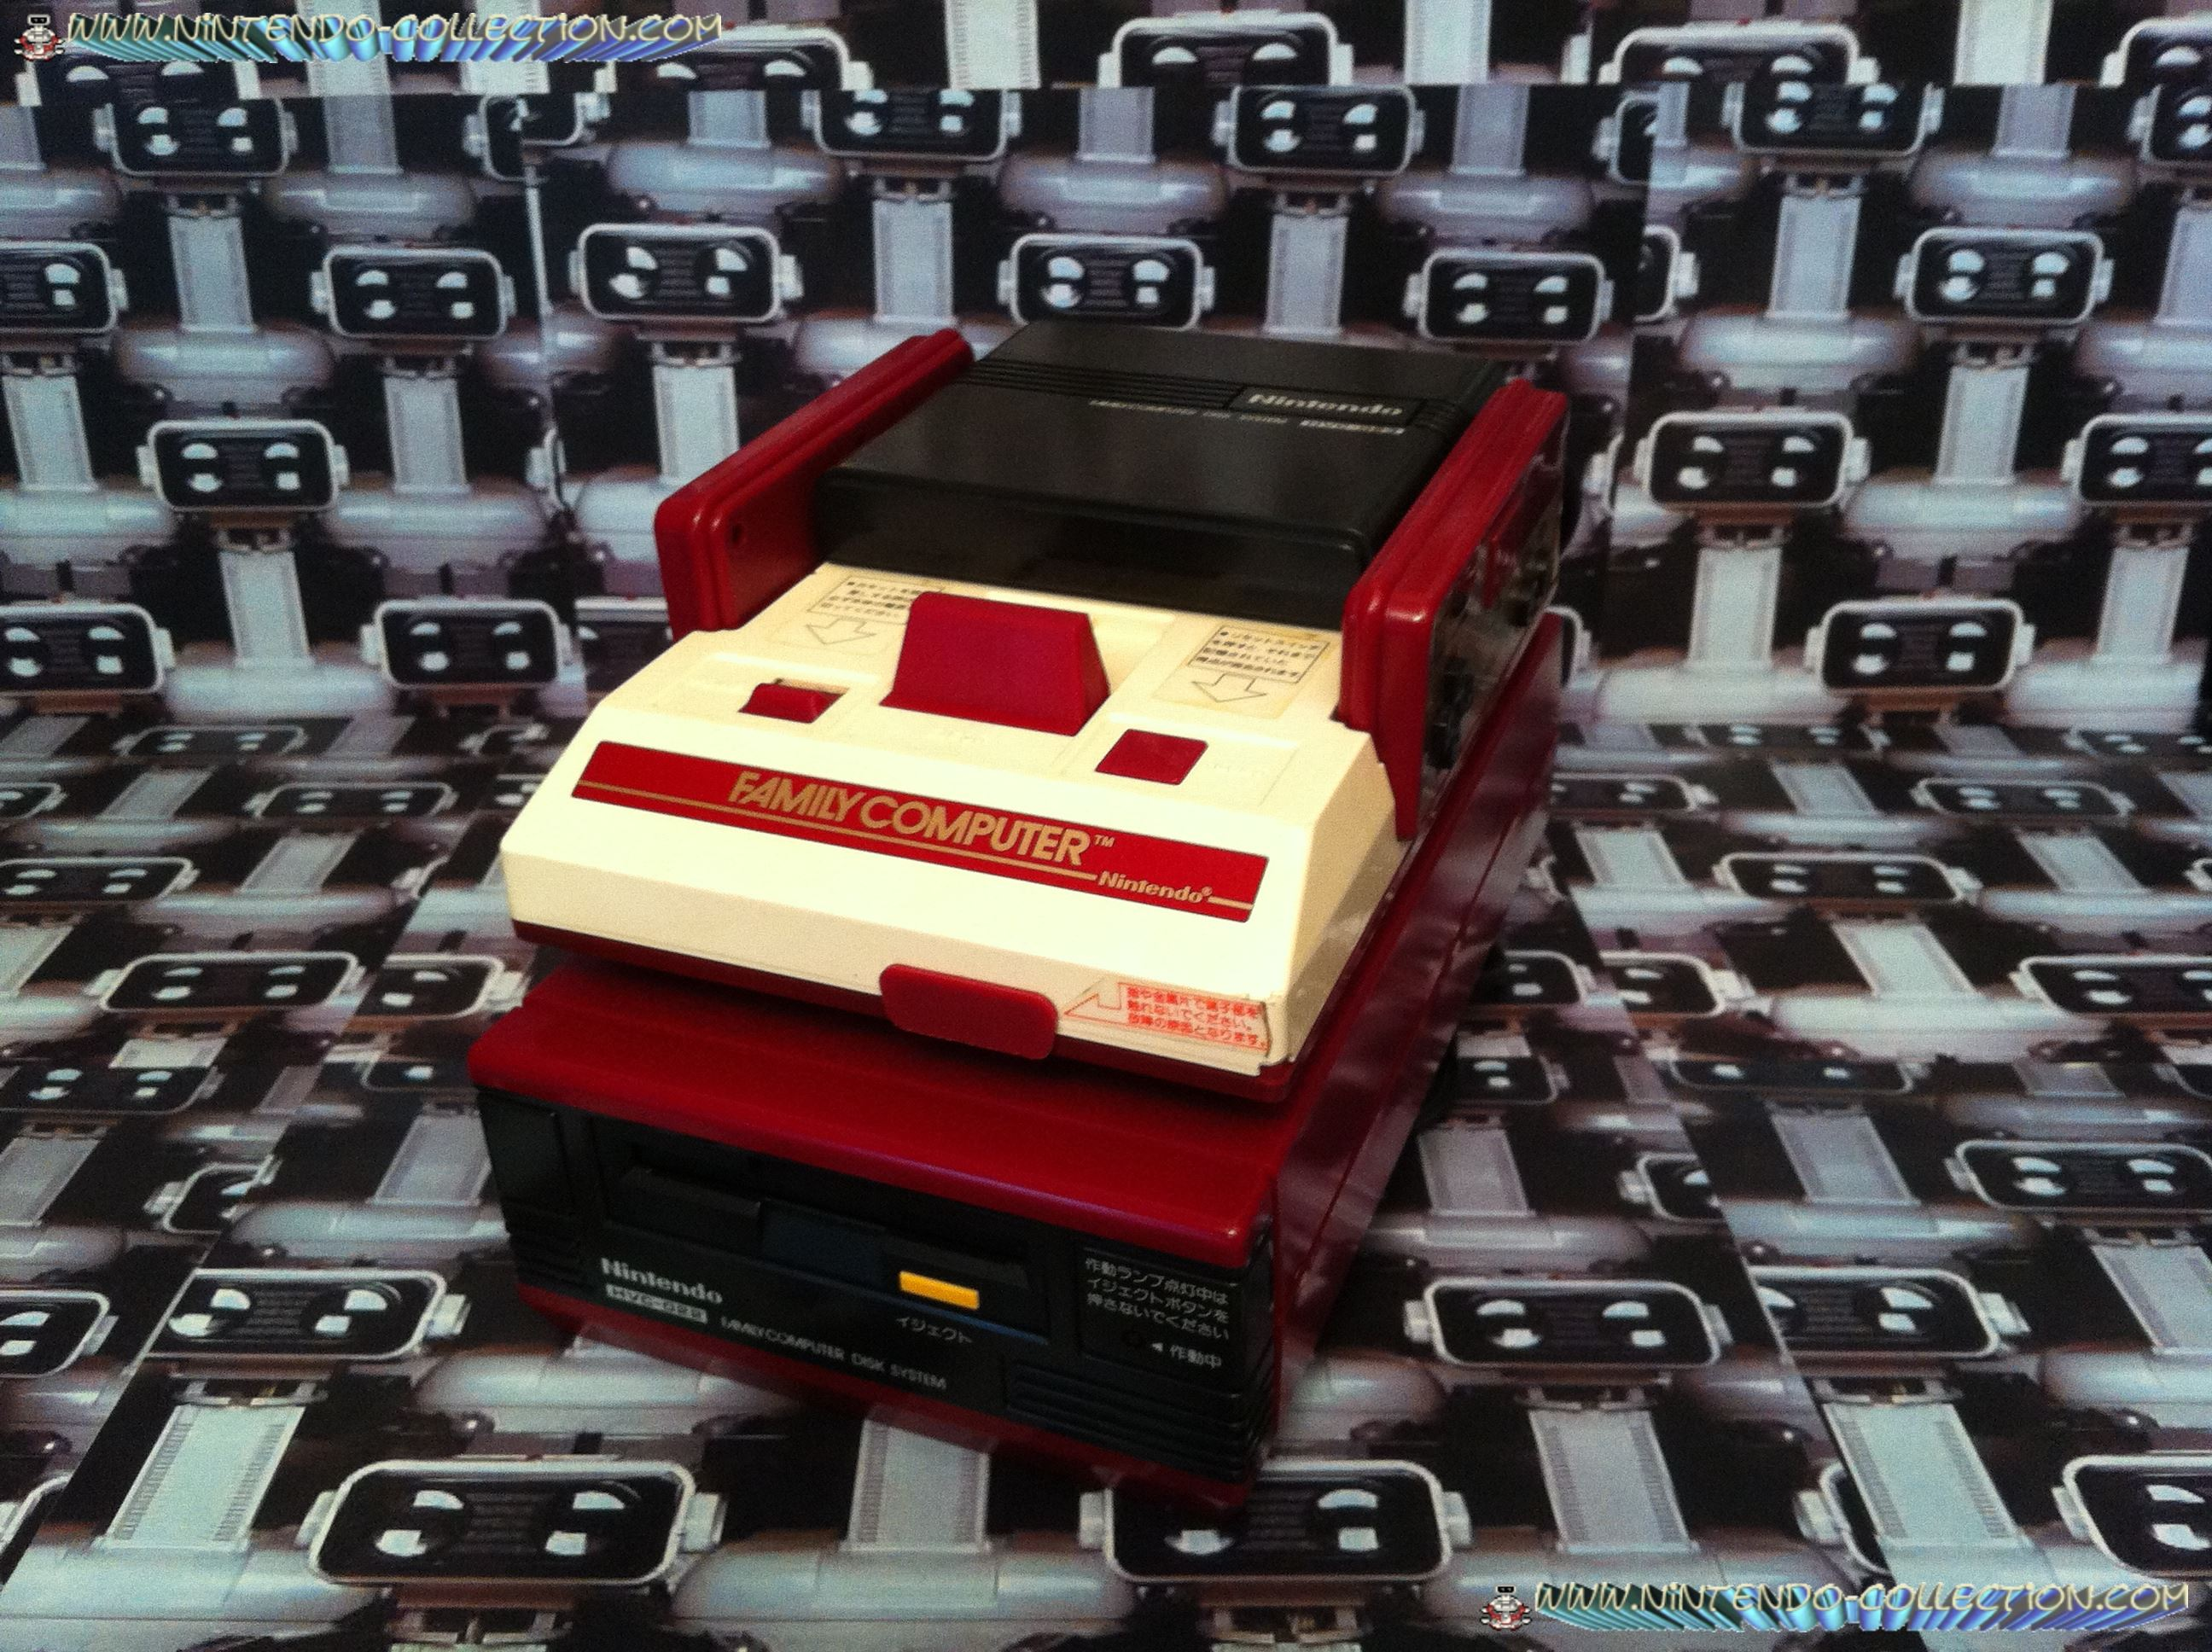 www.nintendo-collection.com - Famicom.jpg + Disk System